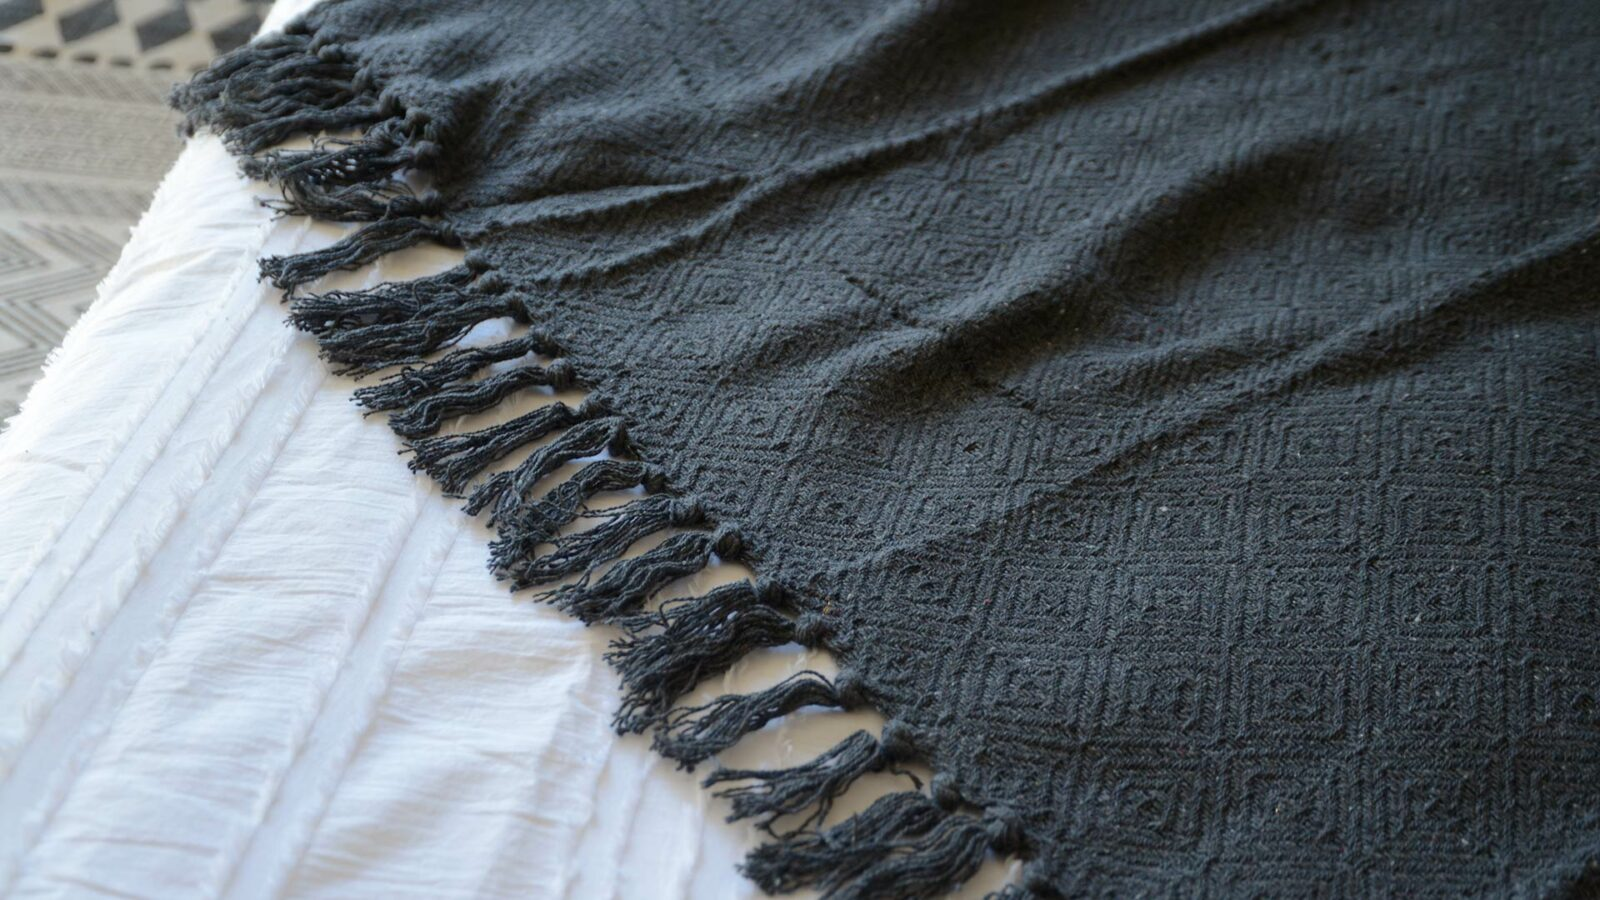 charcoal grey diamond weave cotton throw with fronted edge shown close up